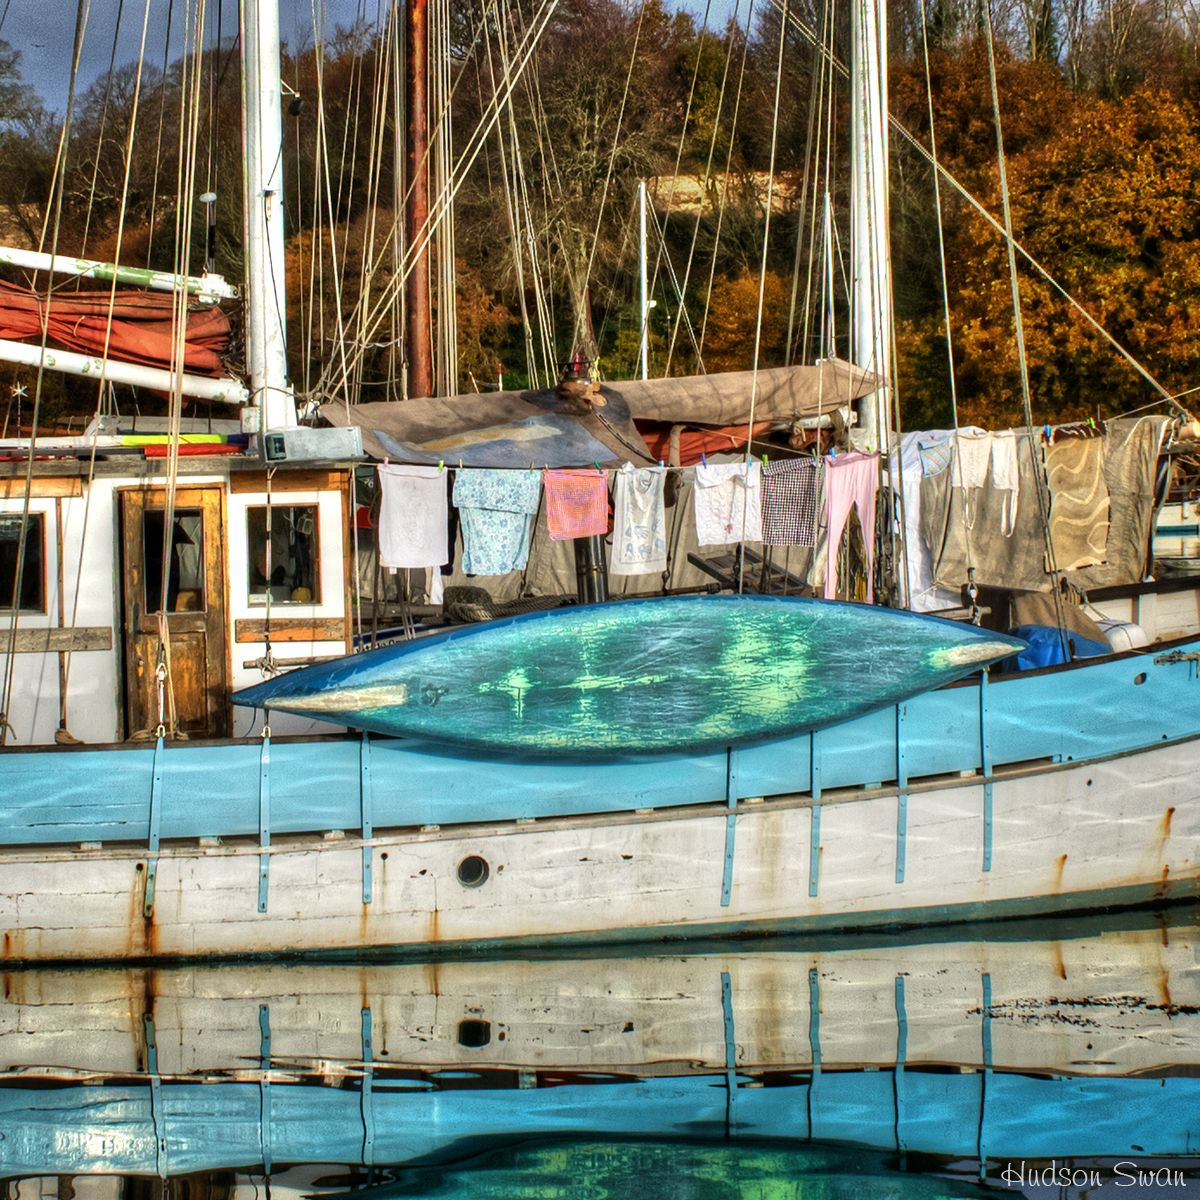 Laundry Day! Boat moored up at Penryn Creek.